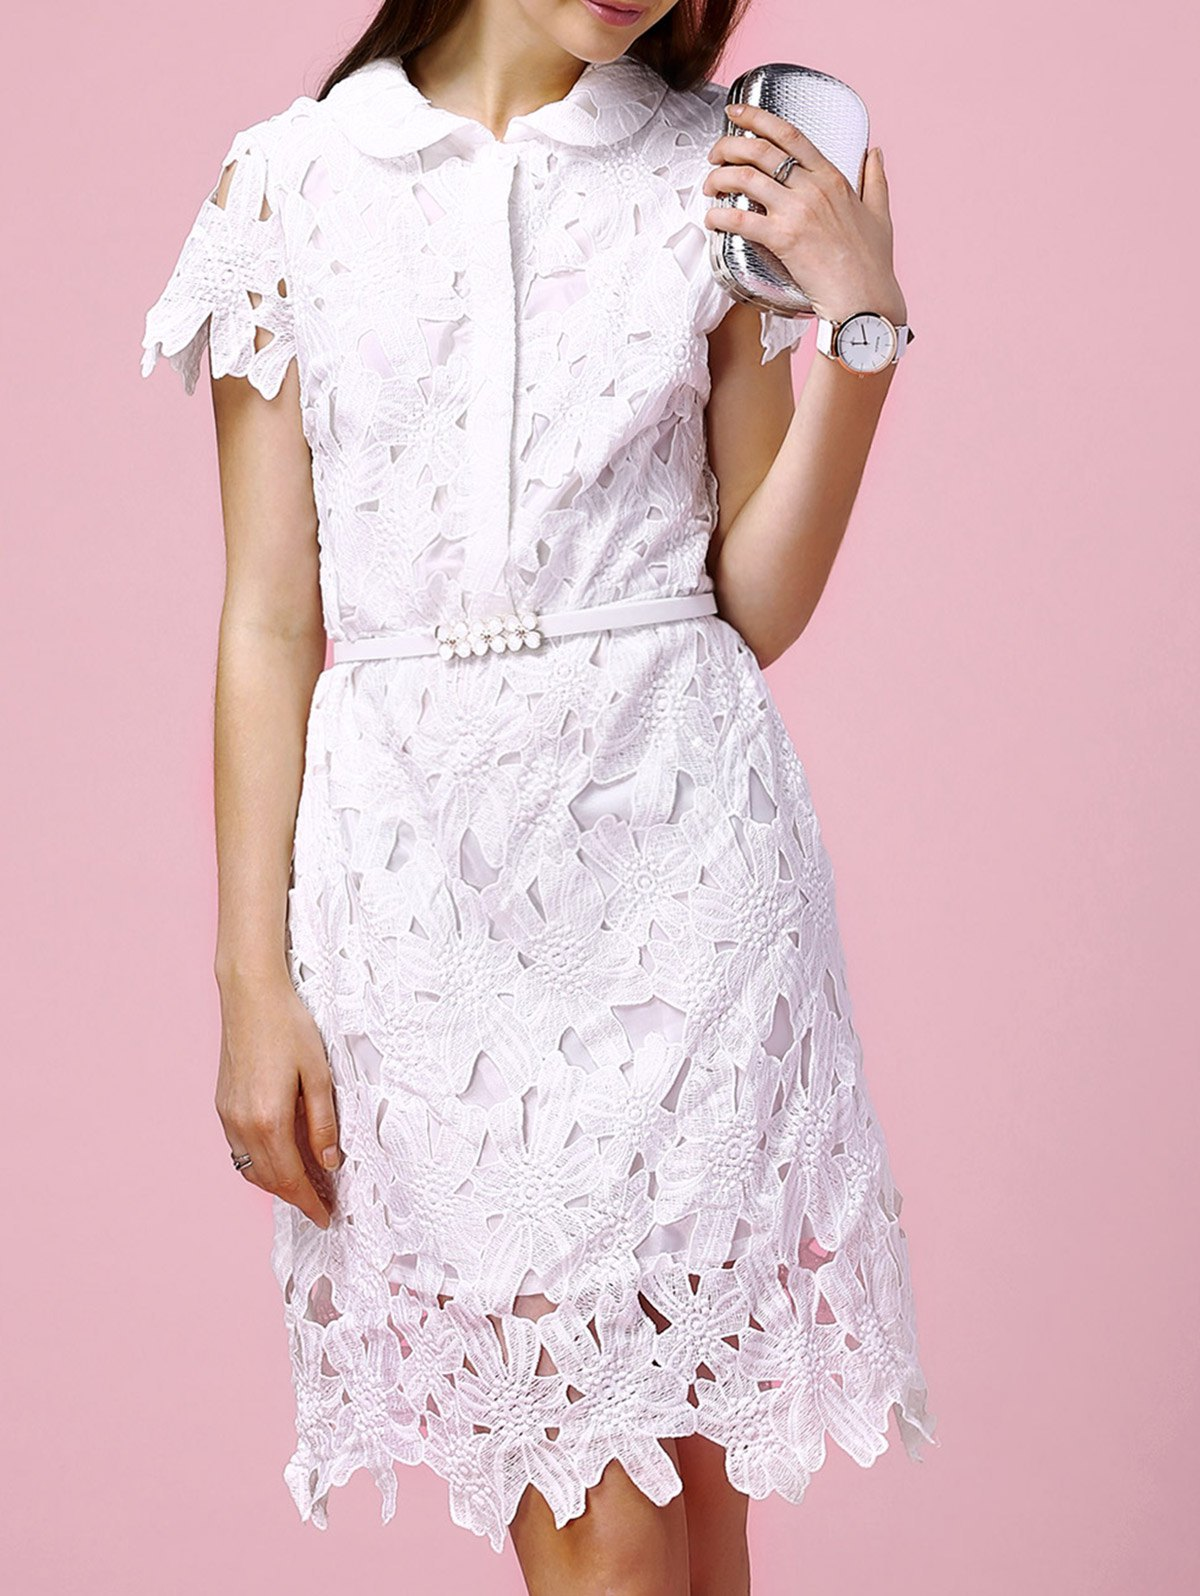 Cute Peter Pan Collar Hollow Out Slimming Floral Embroidery Women's Dress - WHITE M